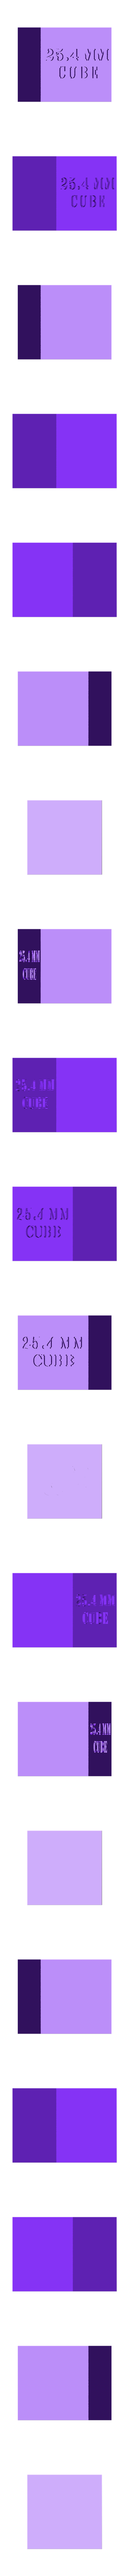 1 Inch Reference Cube-Inch.stl Download free STL file 25.4mm/1 Inch Reference Cube • 3D printer template, johnbearross